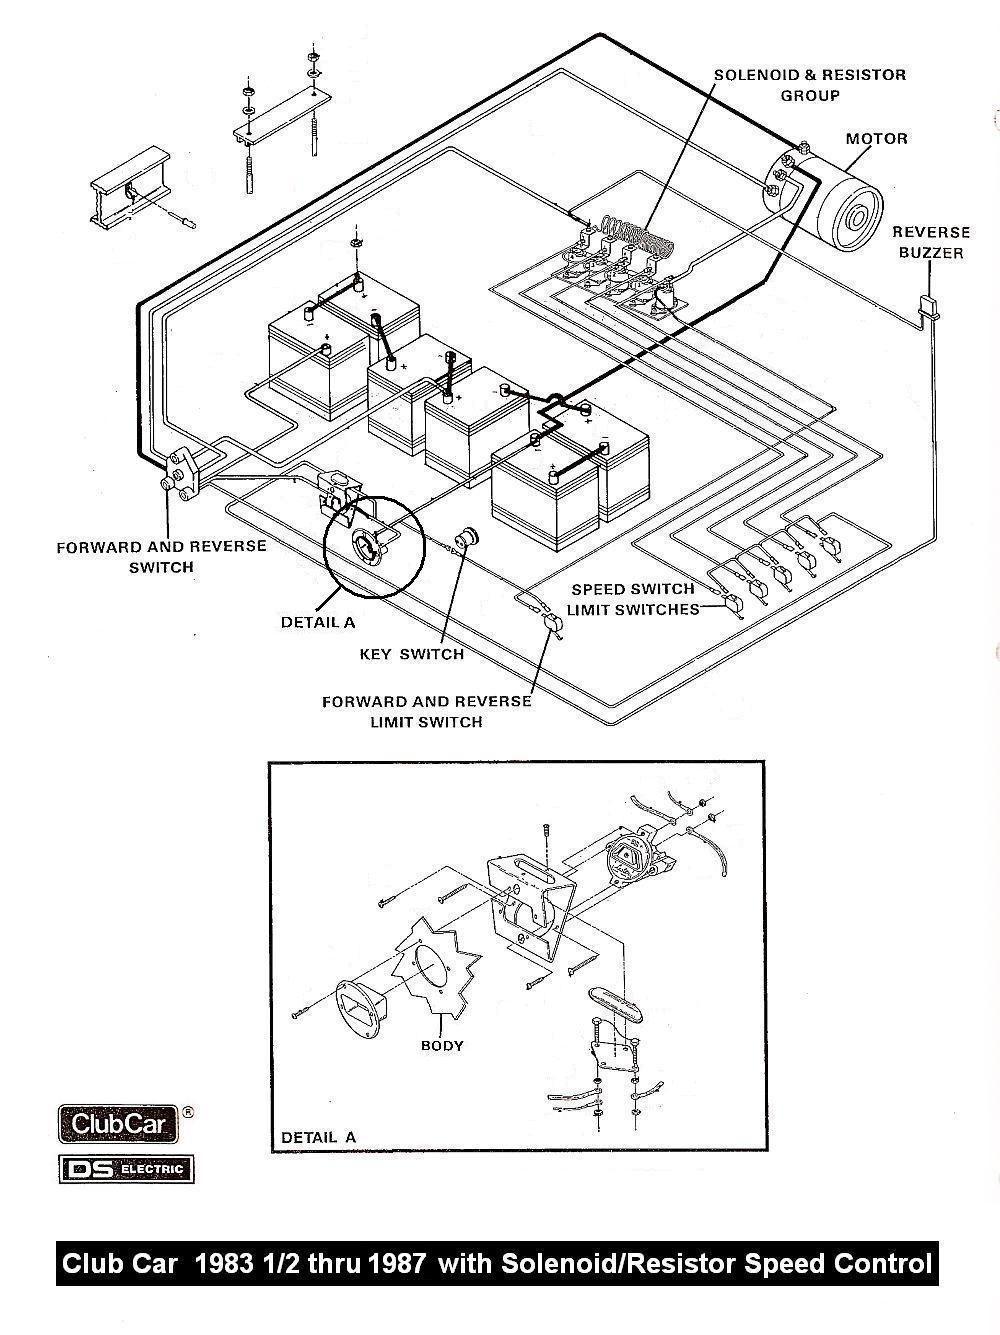 0e8d045370be7682b159825224221faa vintagegolfcartparts com *freezer & crock pot* pinterest 1985 club car wiring diagram at gsmportal.co